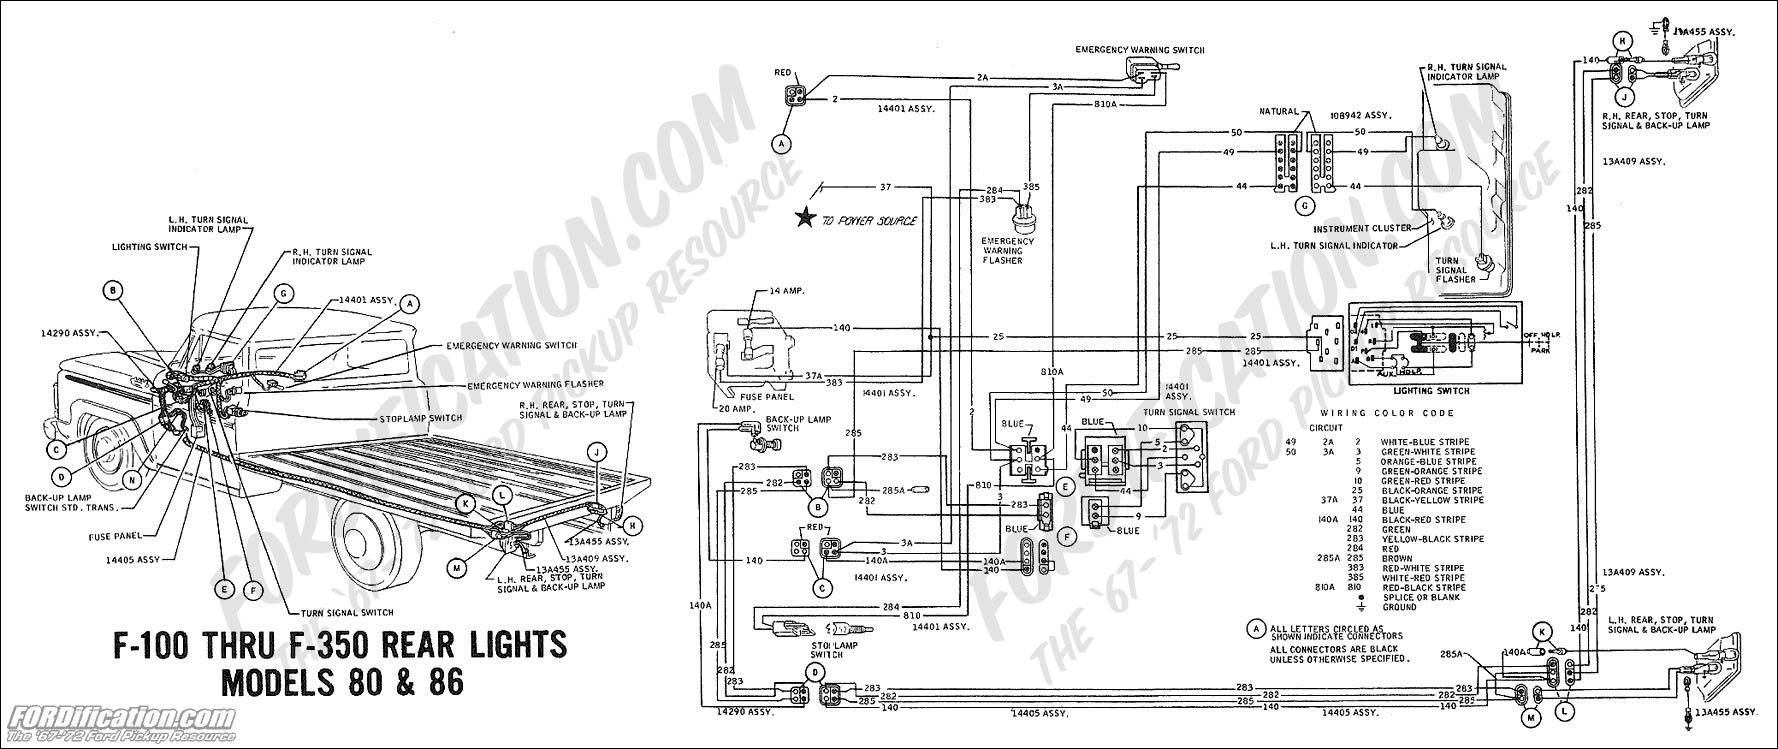 wiring_69rearlights mdls80 86 ford truck technical drawings and schematics section h wiring Ford Super Duty Wiring Diagram at panicattacktreatment.co